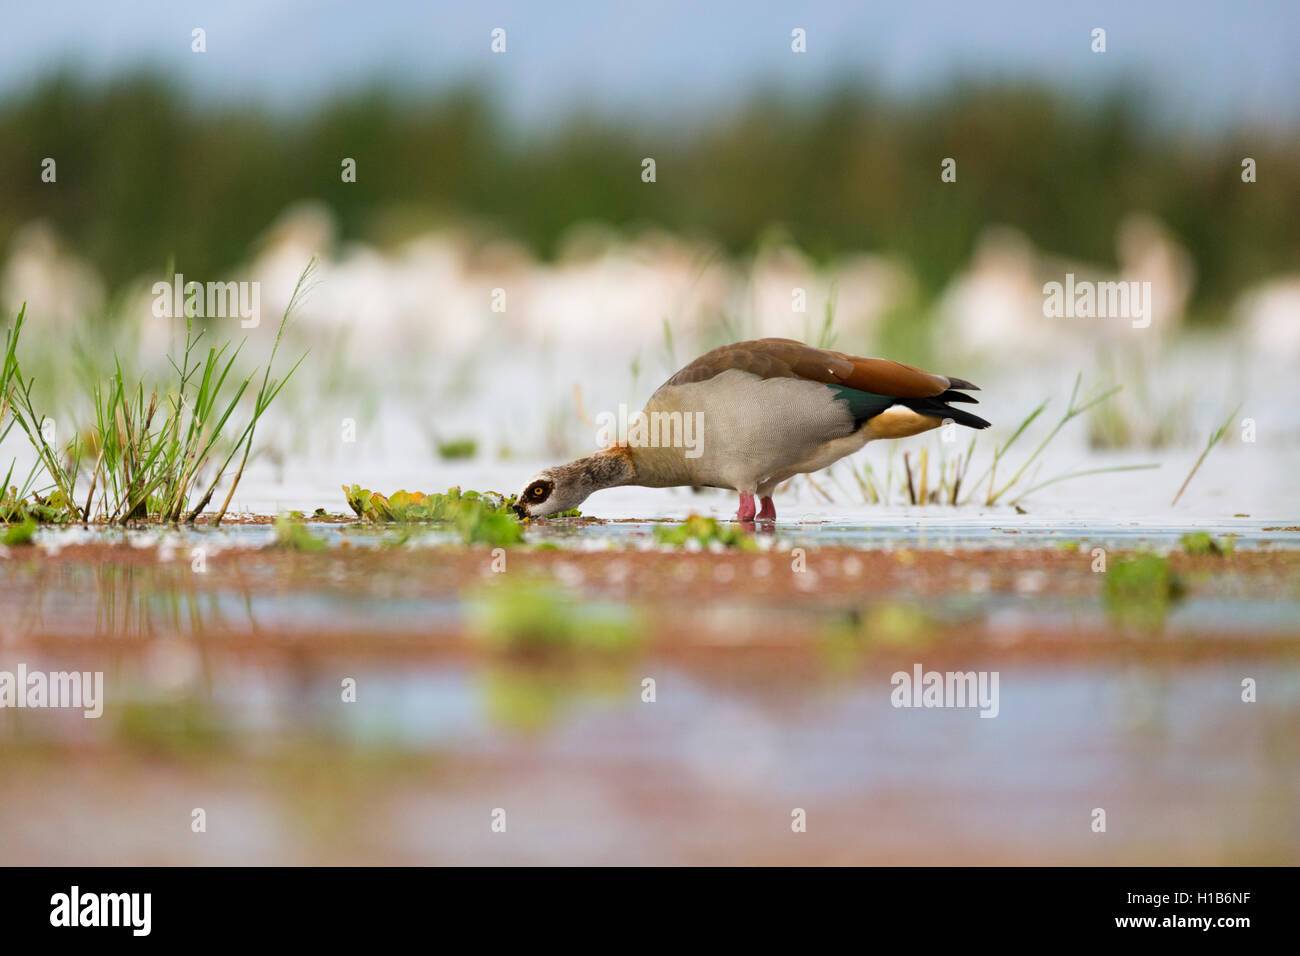 Egyptian goose (Alopochen aegyptiacus) feeding on Lake Manyara, Tanzania - Stock Image